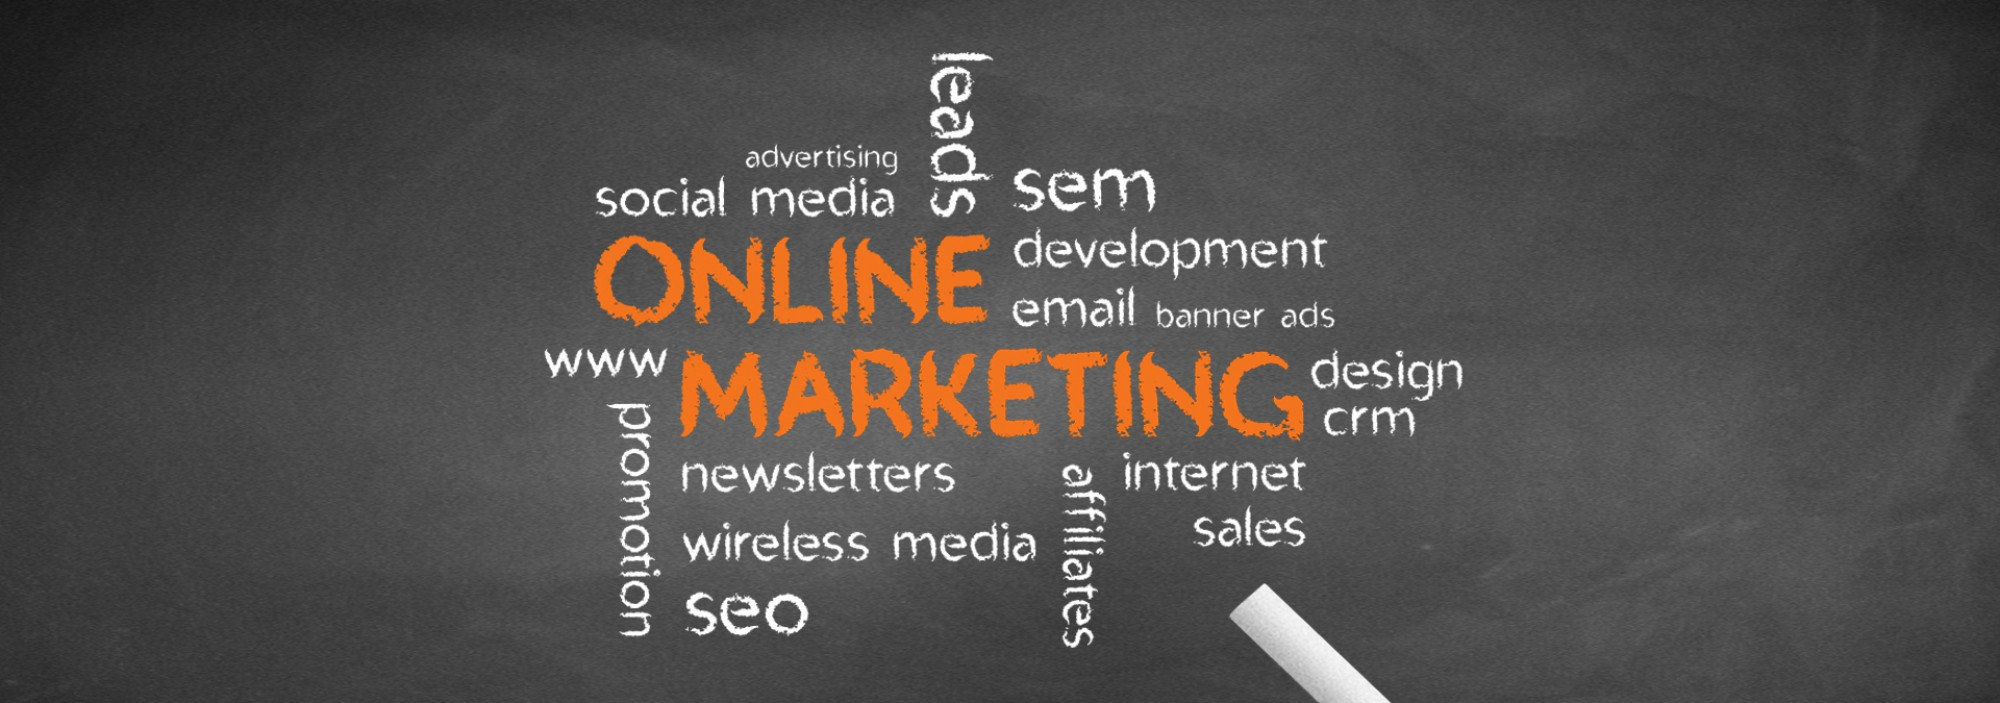 Marketing online si SEO